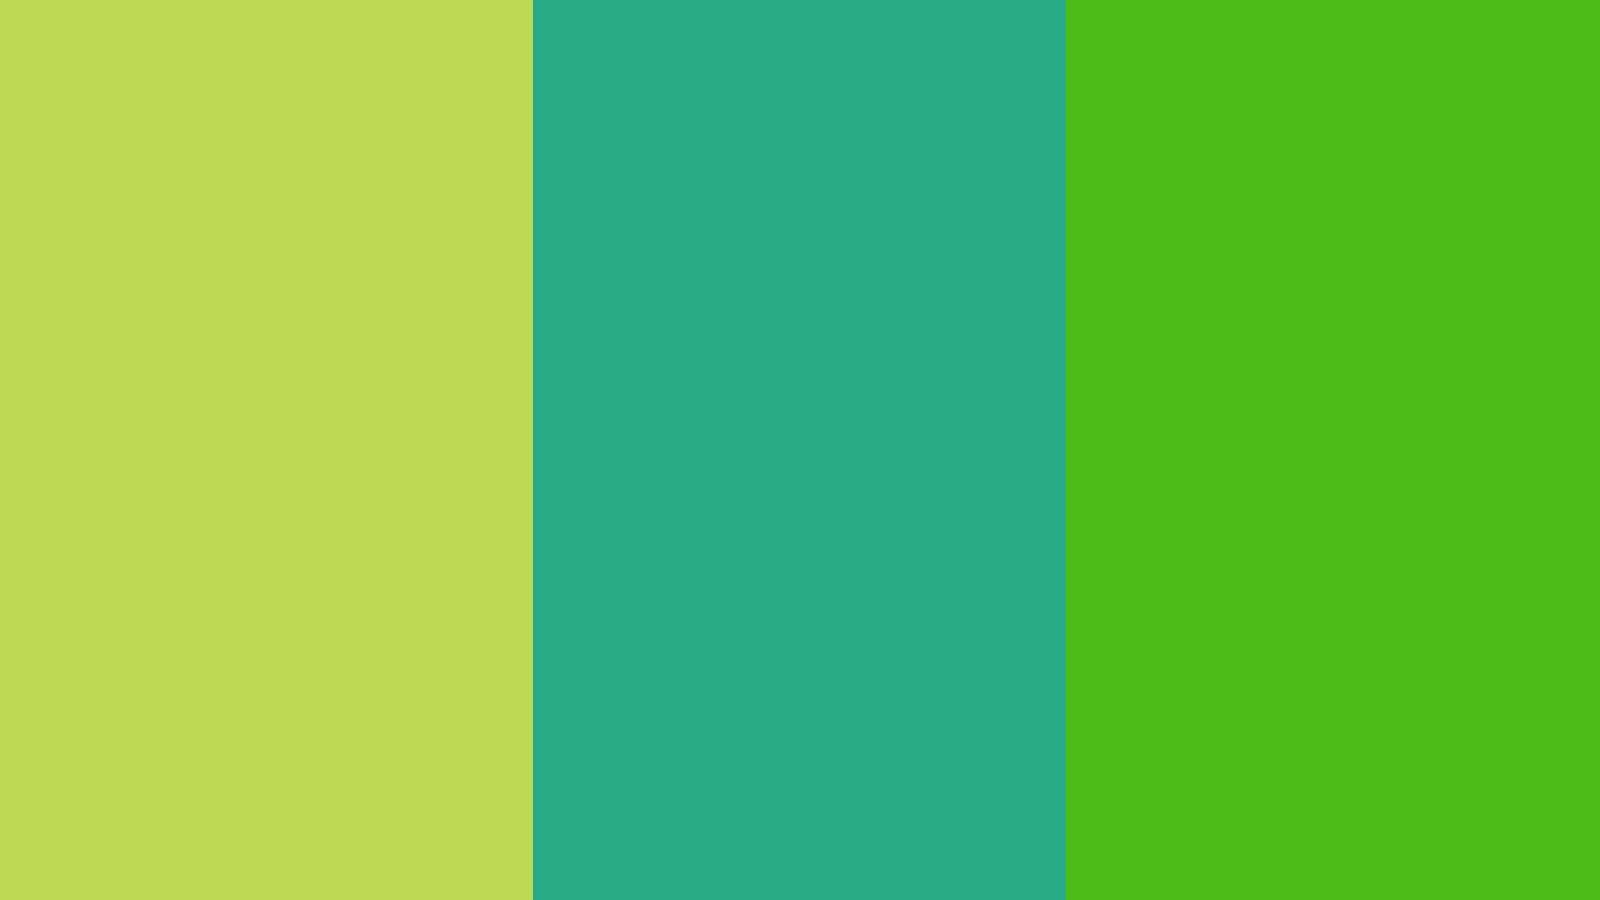 Light Emerald Green Color The Image Kid